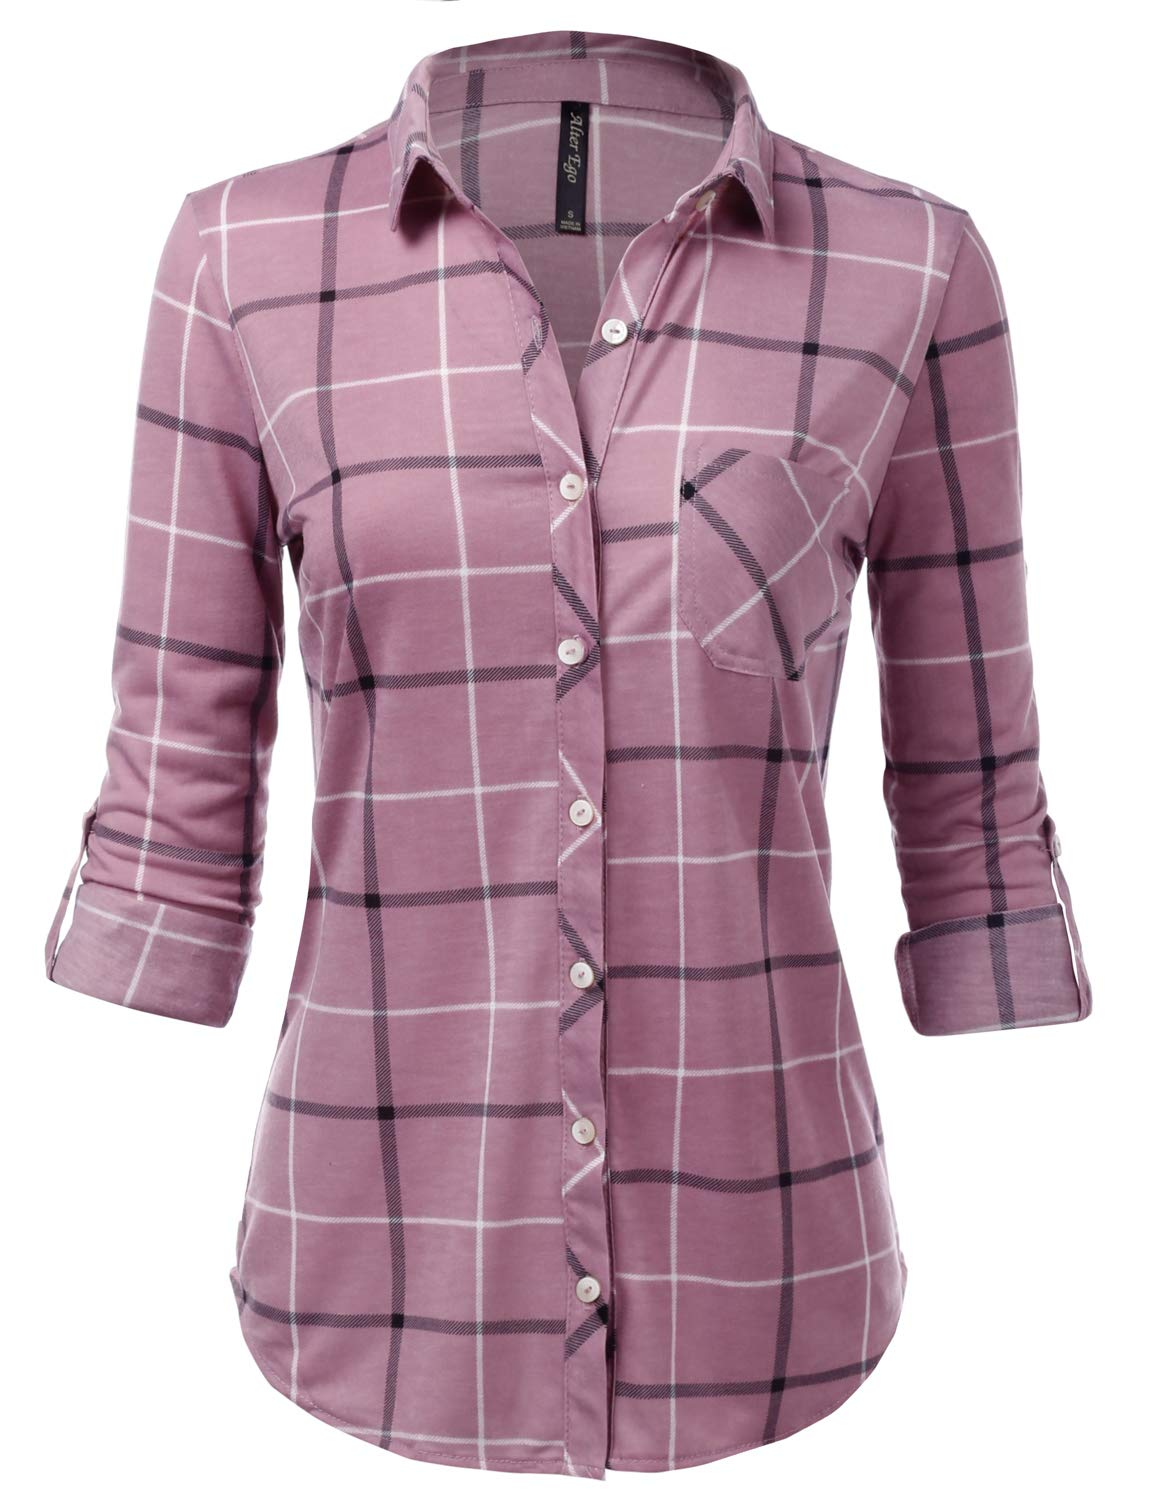 JJ Perfection Womens Long Sleeve Collared Button Down Plaid Flannel Shirt LAVENDERBLACK S